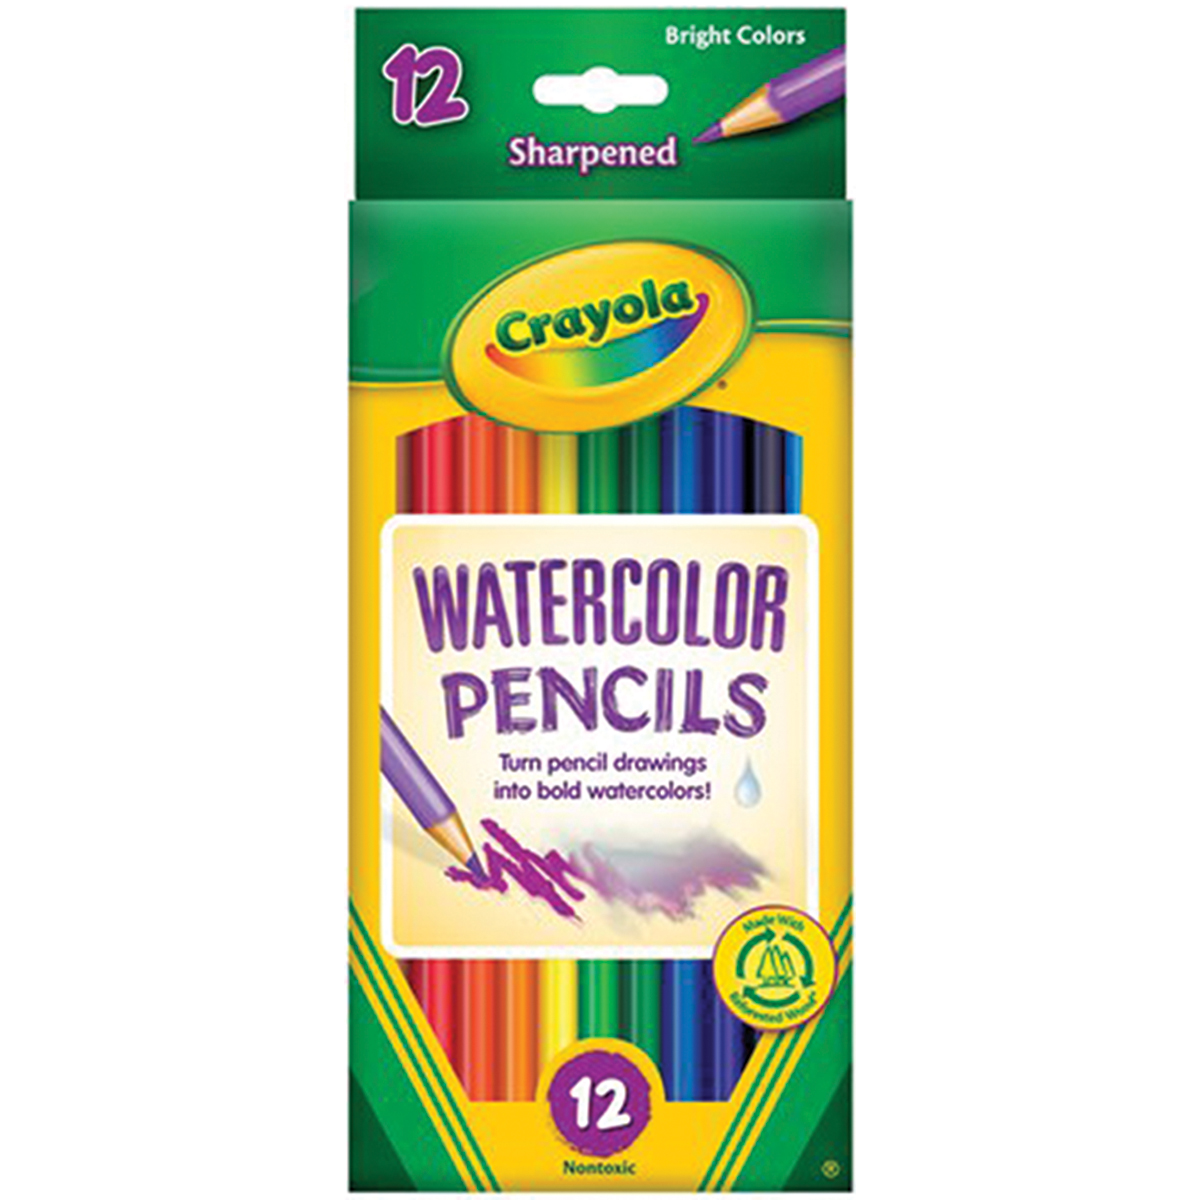 Crayola Watercolor Colored Pencils 12 Count Use Wet Or Dry